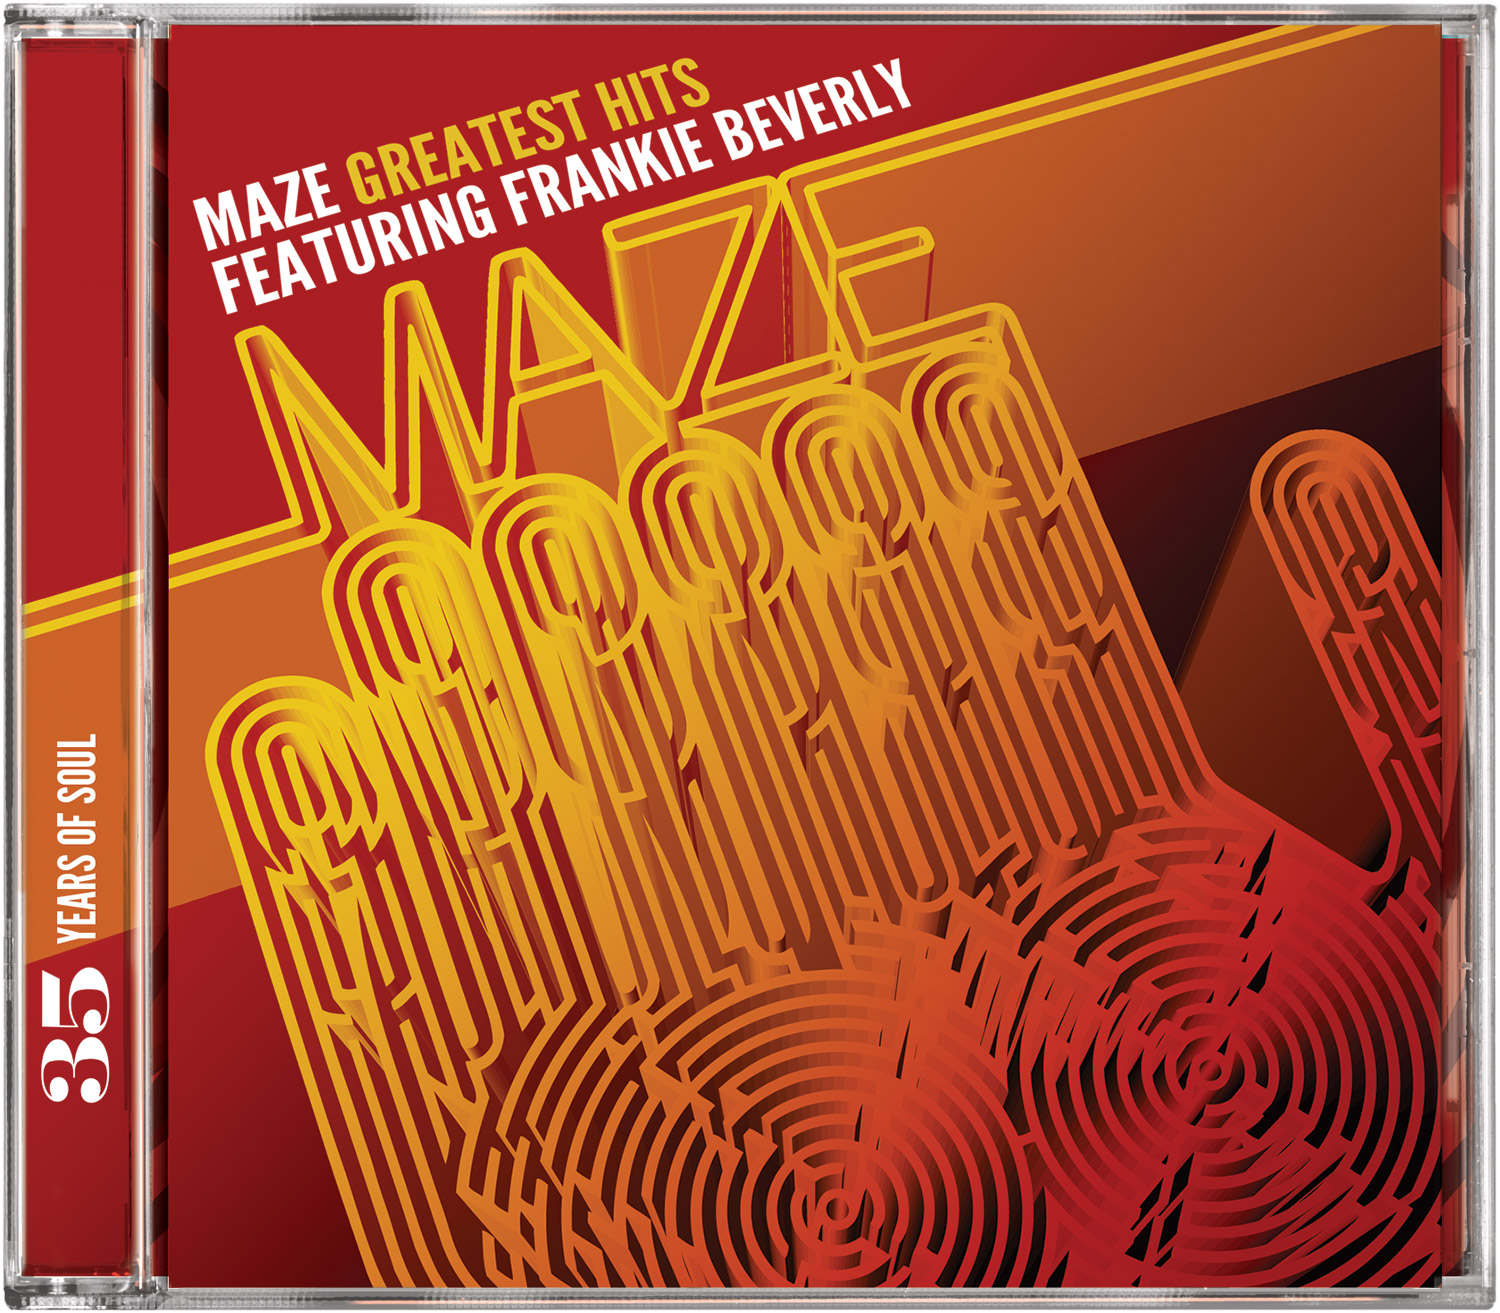 Maze Greatest Hits